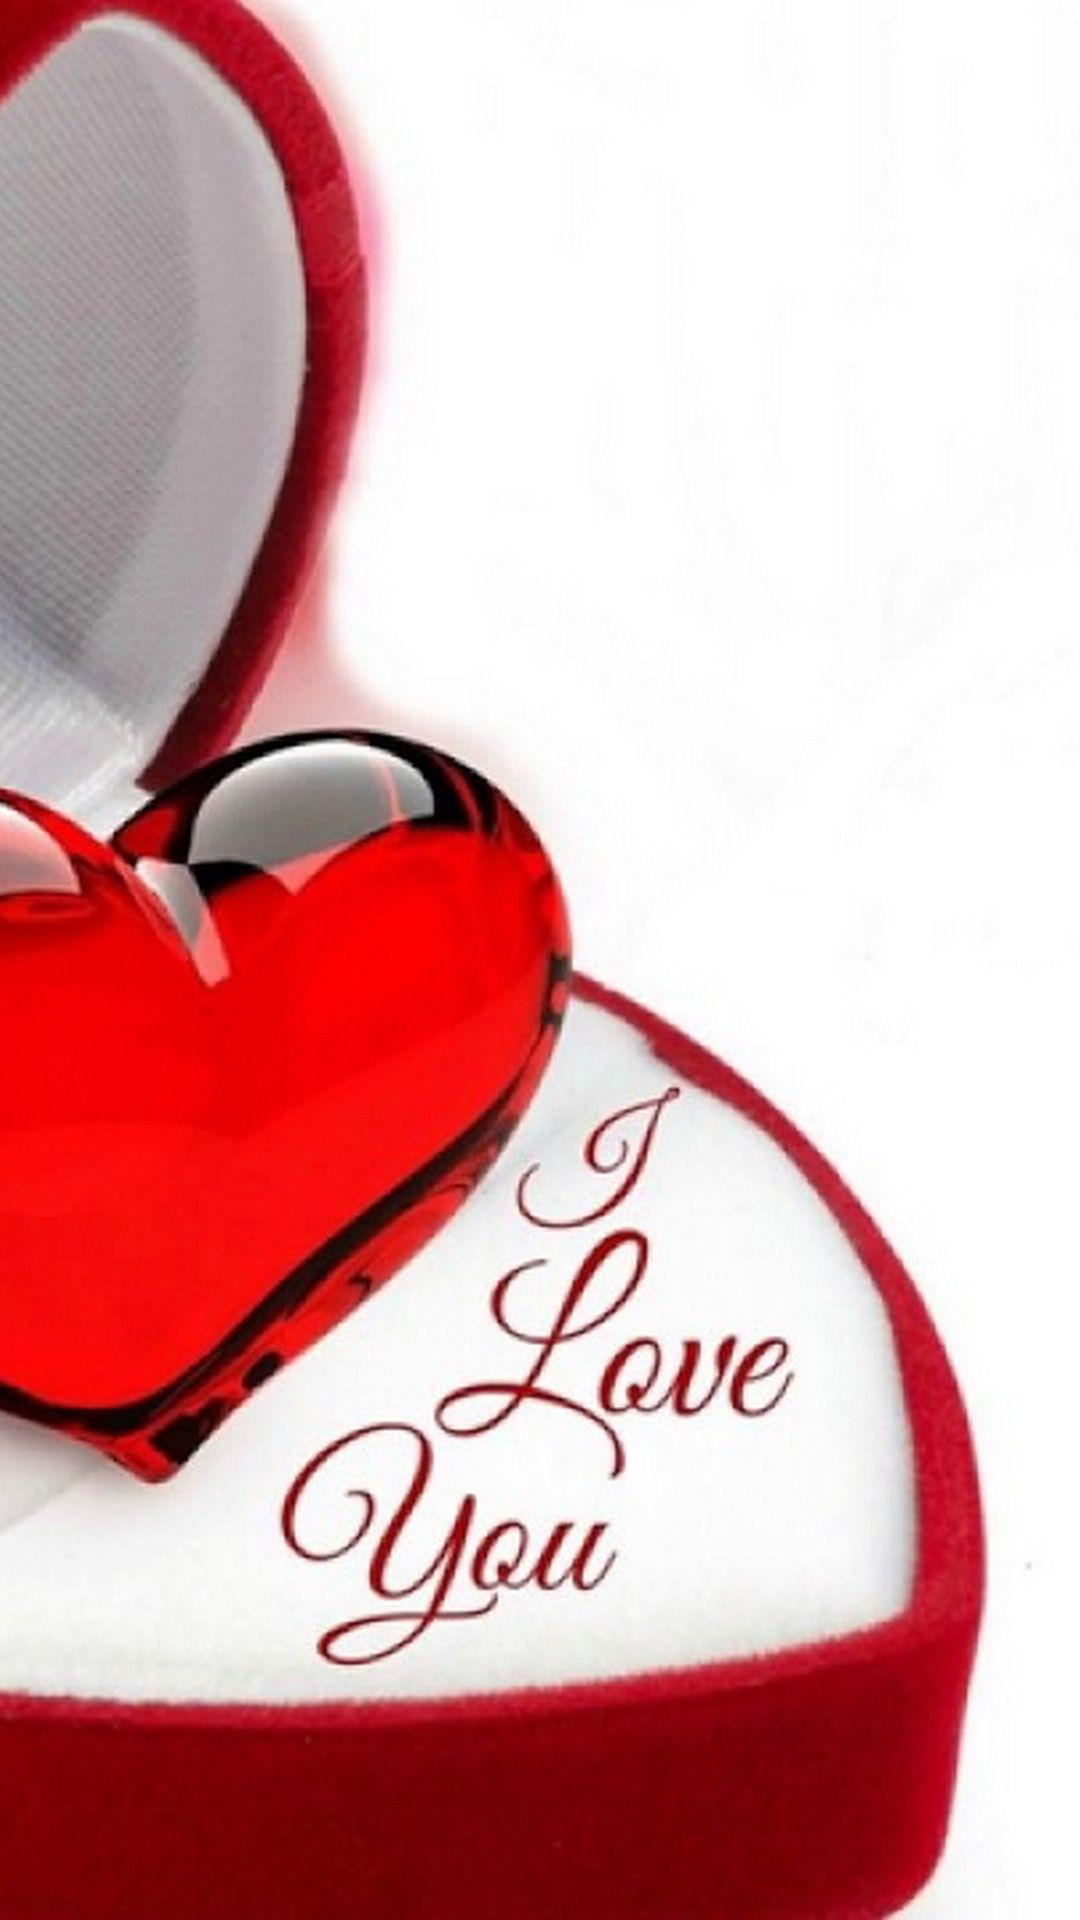 Pin On Love Wallpaper Hd For Iphone Cool love hd wallpaper for iphone 7